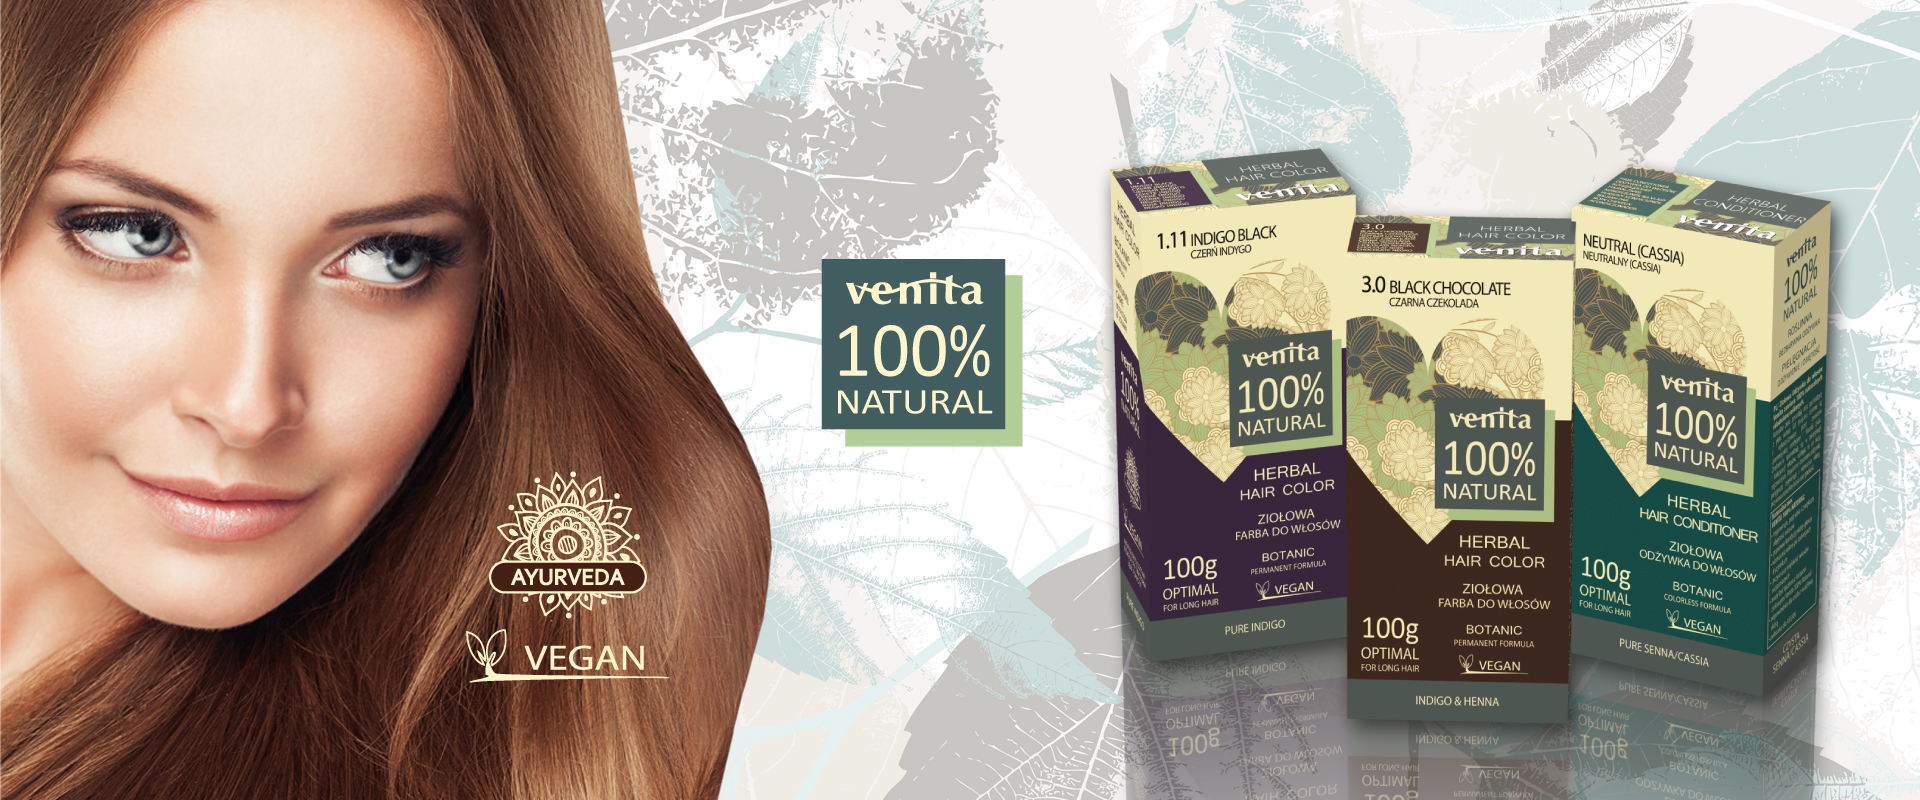 This is a young woman with light brown hair showing natural vegan hair dyes with pure henna